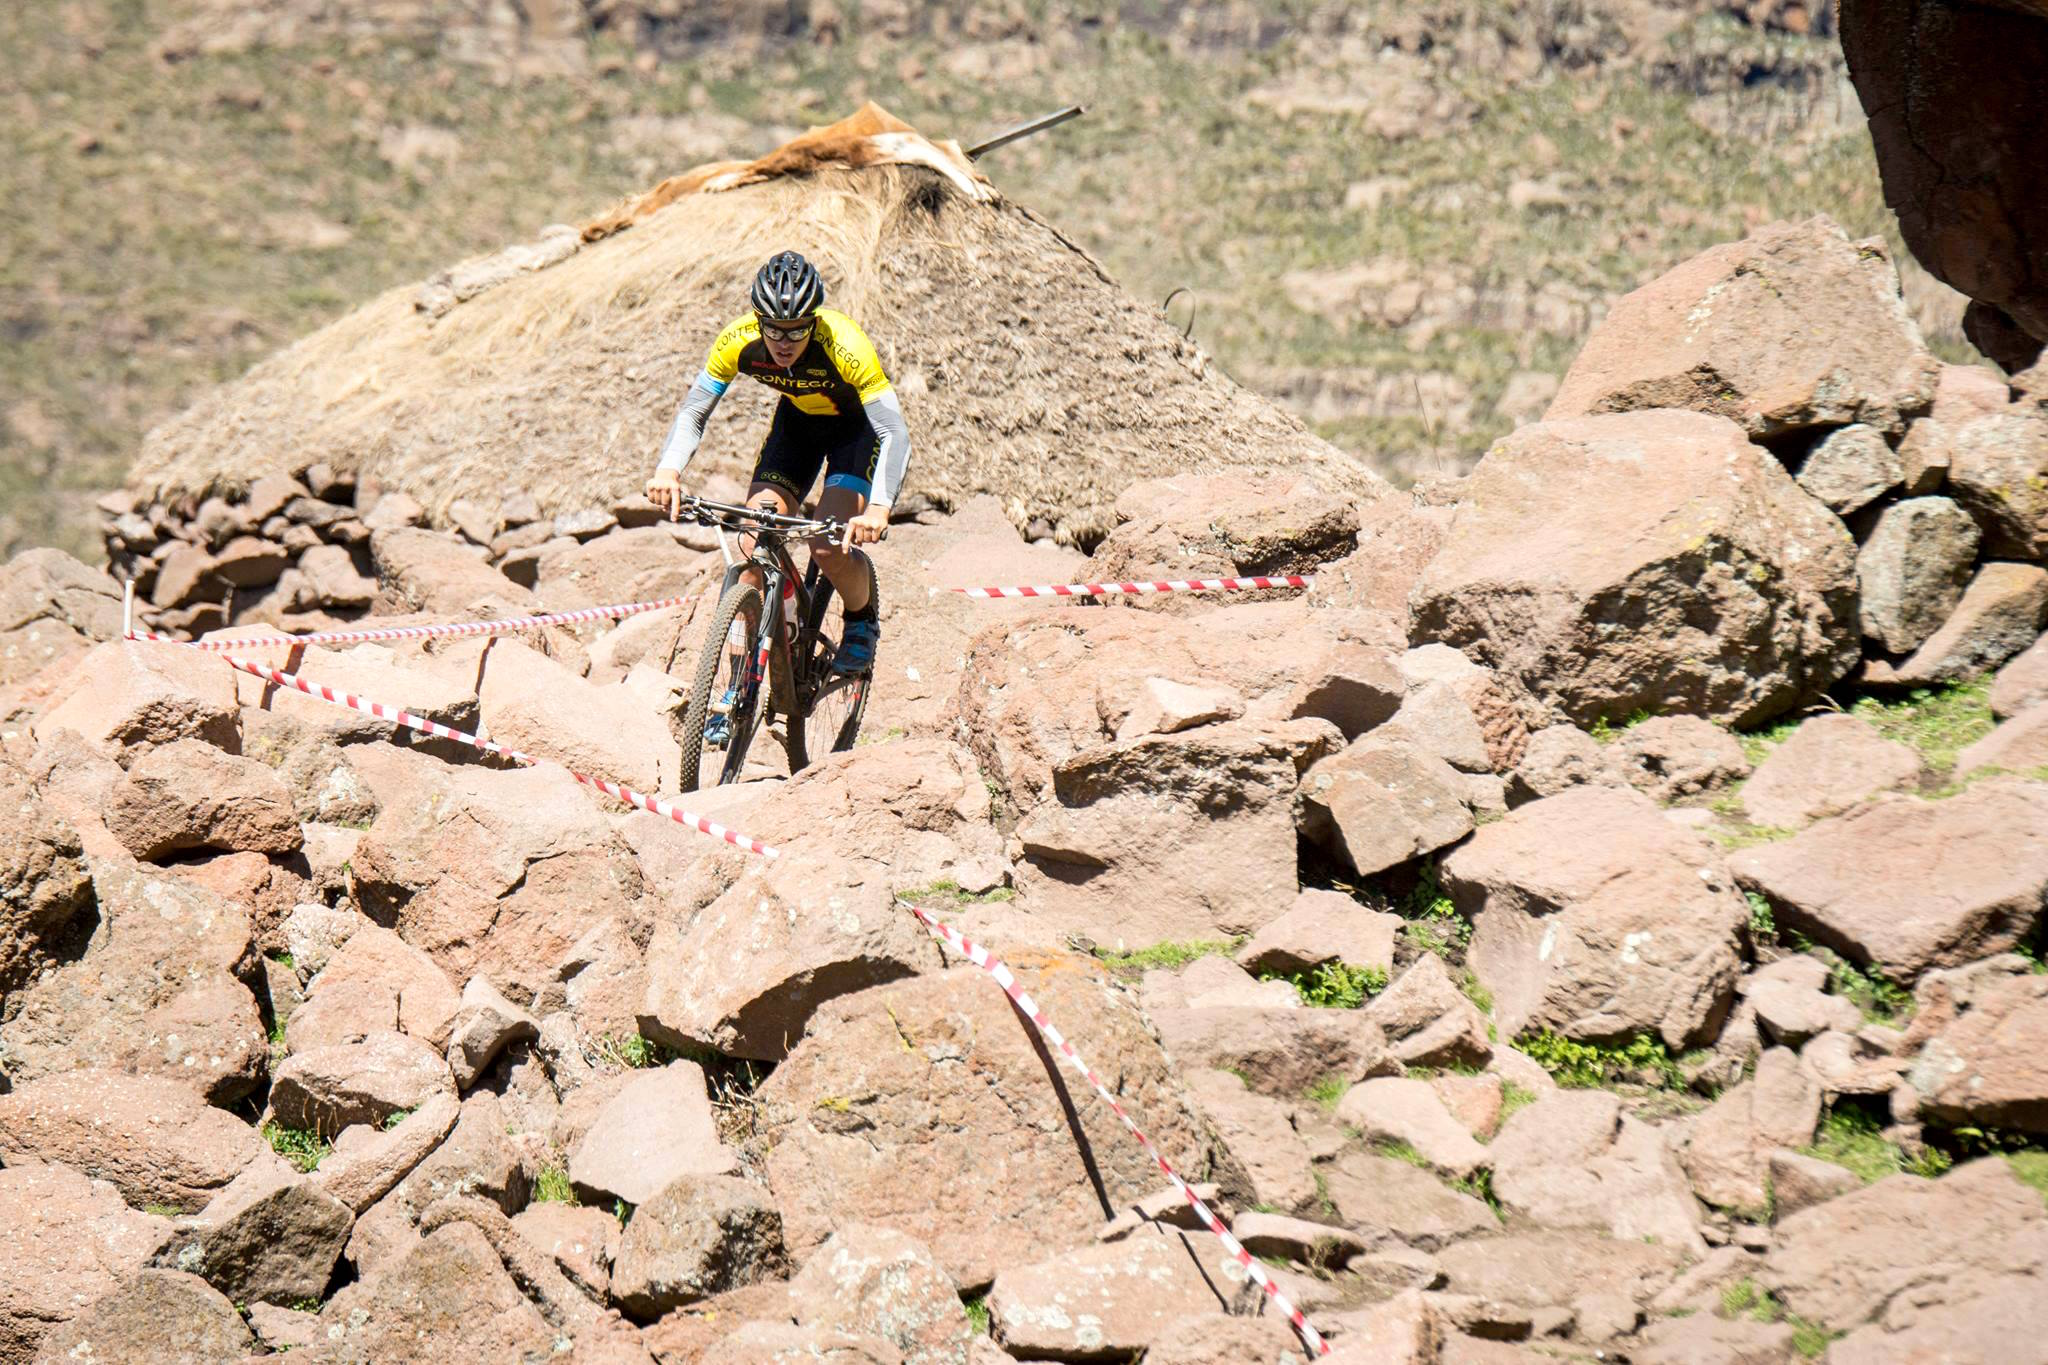 After taking part in races in Europe, Team Contego's Jarrod van den Heever looks ahead to the UCI Junior World Series XCO event at the second annual Pietermaritzburg MTB Festival at Cascades MTB Park, taking place this year from Friday 30 April to Monday 2 May. Photo: Andrew McFadden/BOOGS Photography